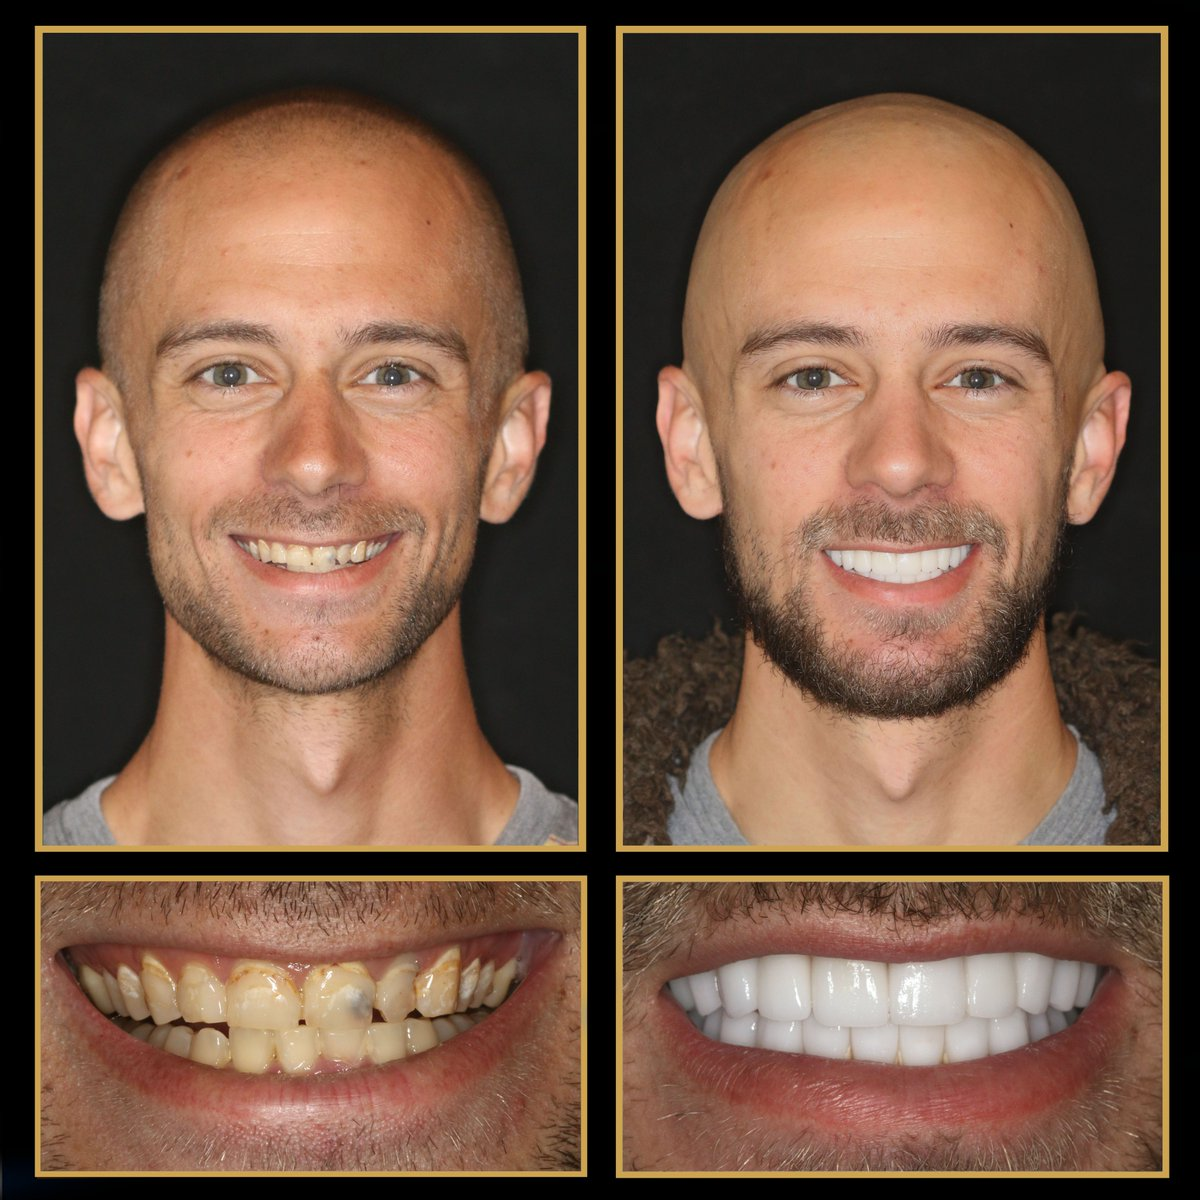 Check out our new #smilemakeover recipient, Ryan. Look at his amazing transformation! We always love seeing what #veneers, crowns, bridges, #dentalimplants and #reconstructivedentistry can do to change a client's life http://TheCosmeticDentistsOfAustin.com #TransformationTuesdaypic.twitter.com/Y9OY0OcQQf